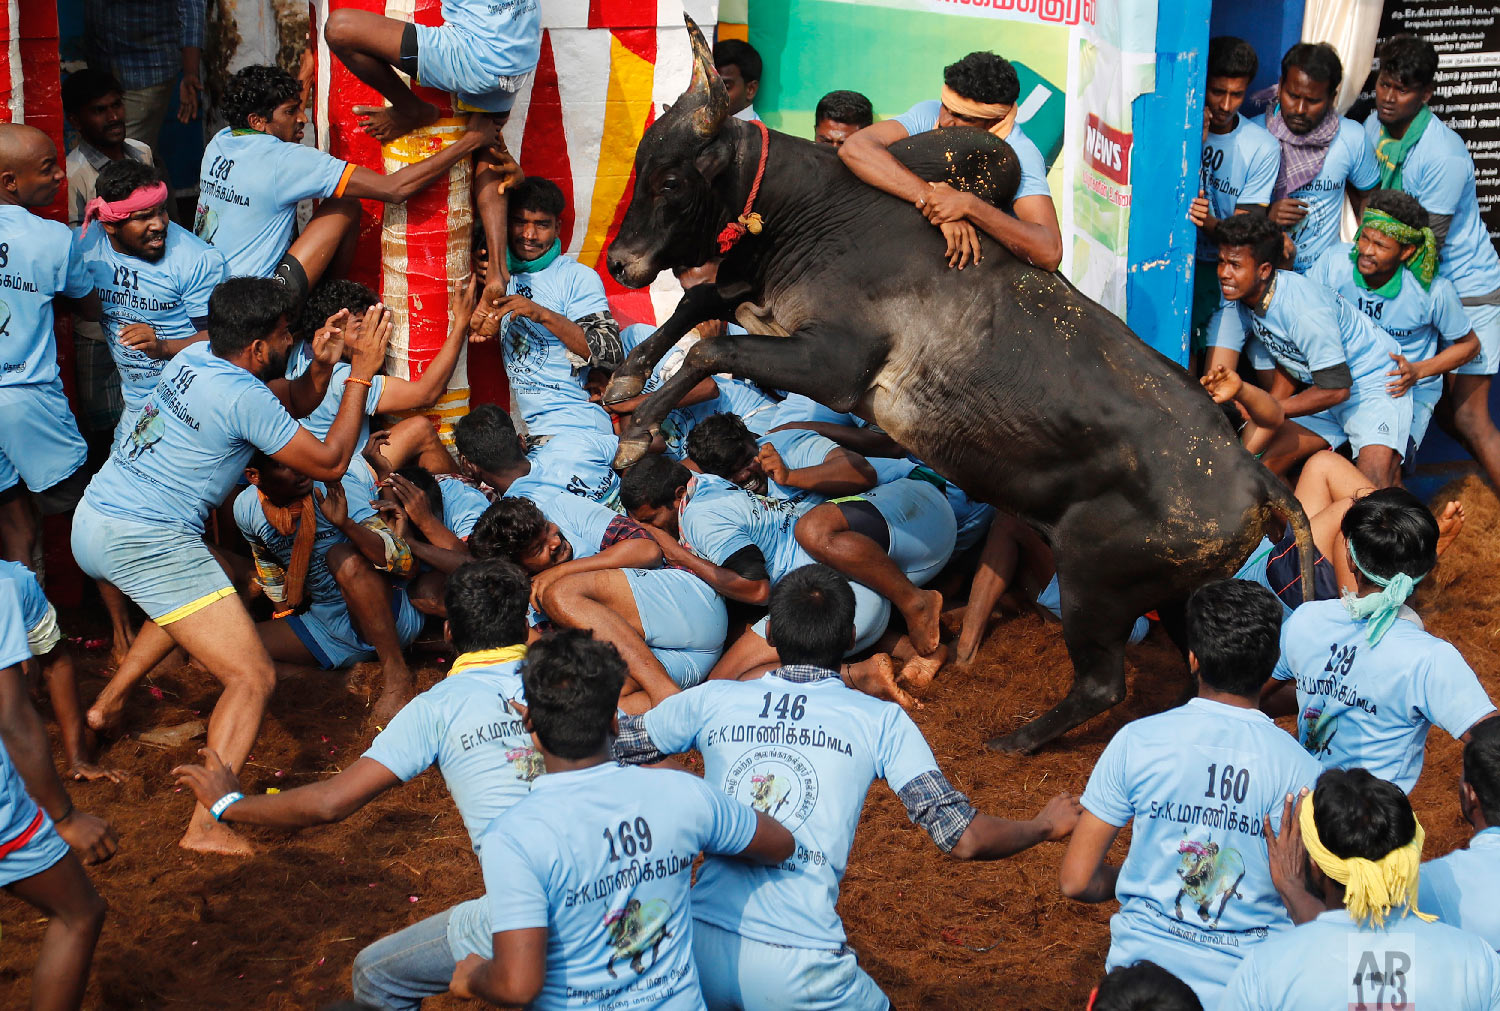 Indian tamers react as a fellow tamer tries to control a charging bull during a traditional bull-taming festival called Jallikattu, in the village of Allanganallur, near Madurai, Tamil Nadu state, India, Thursday, Jan. 17, 2019. (AP Photo/Aijaz Rahi)